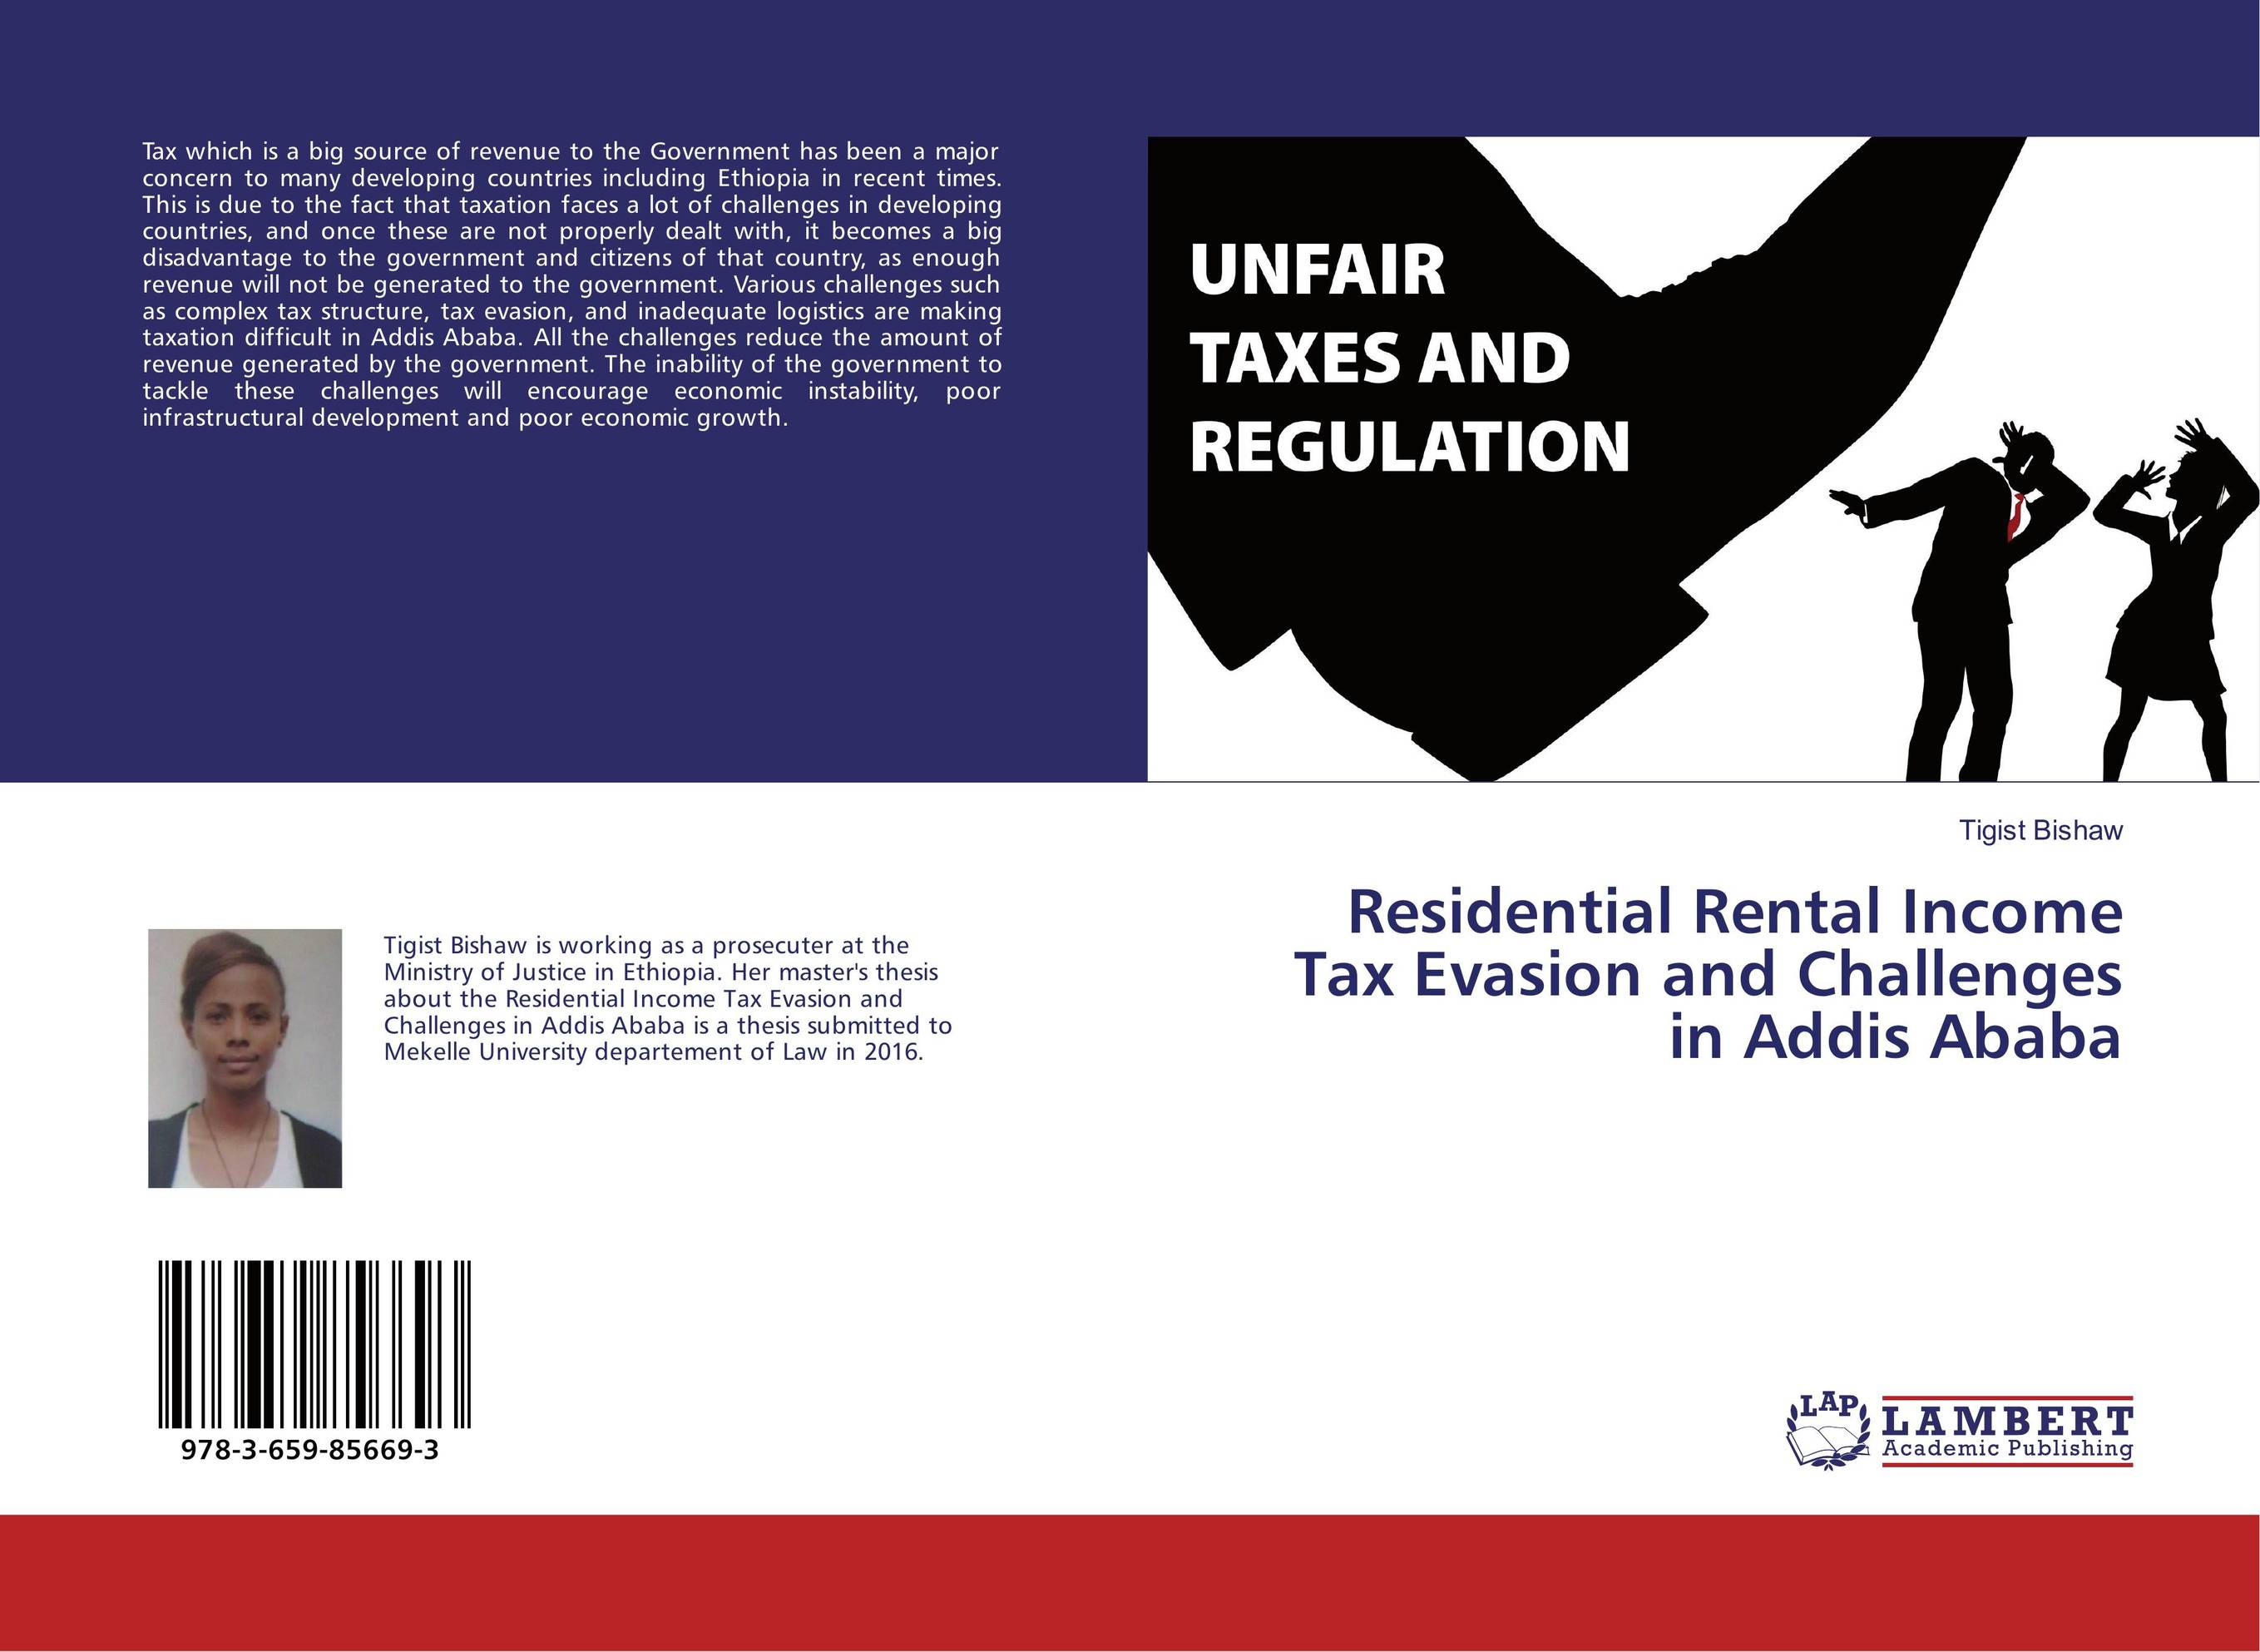 Residential Rental Income Tax Evasion and Challenges in Addis Ababa